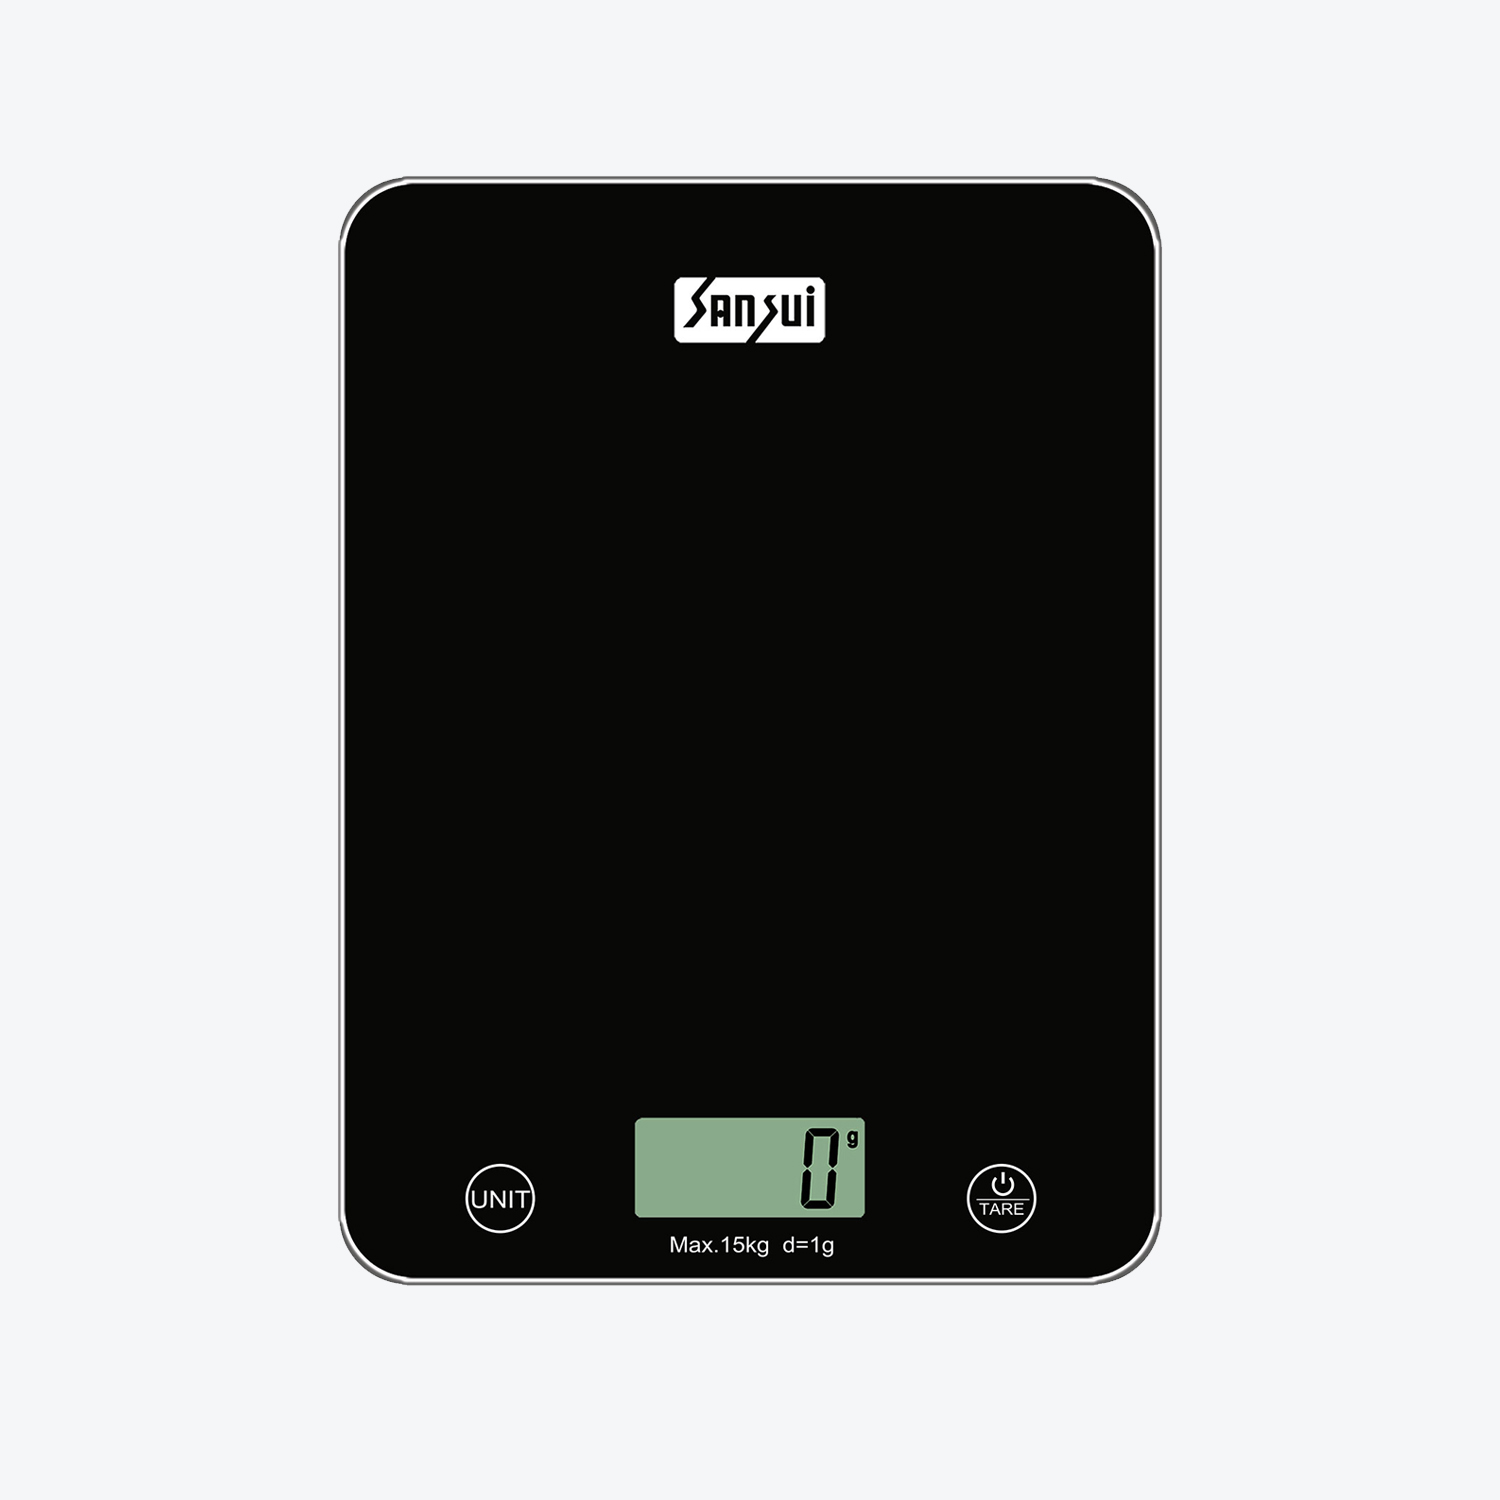 Sansui Kitchen Scale Flat, digital kitchen scale, weighing machine